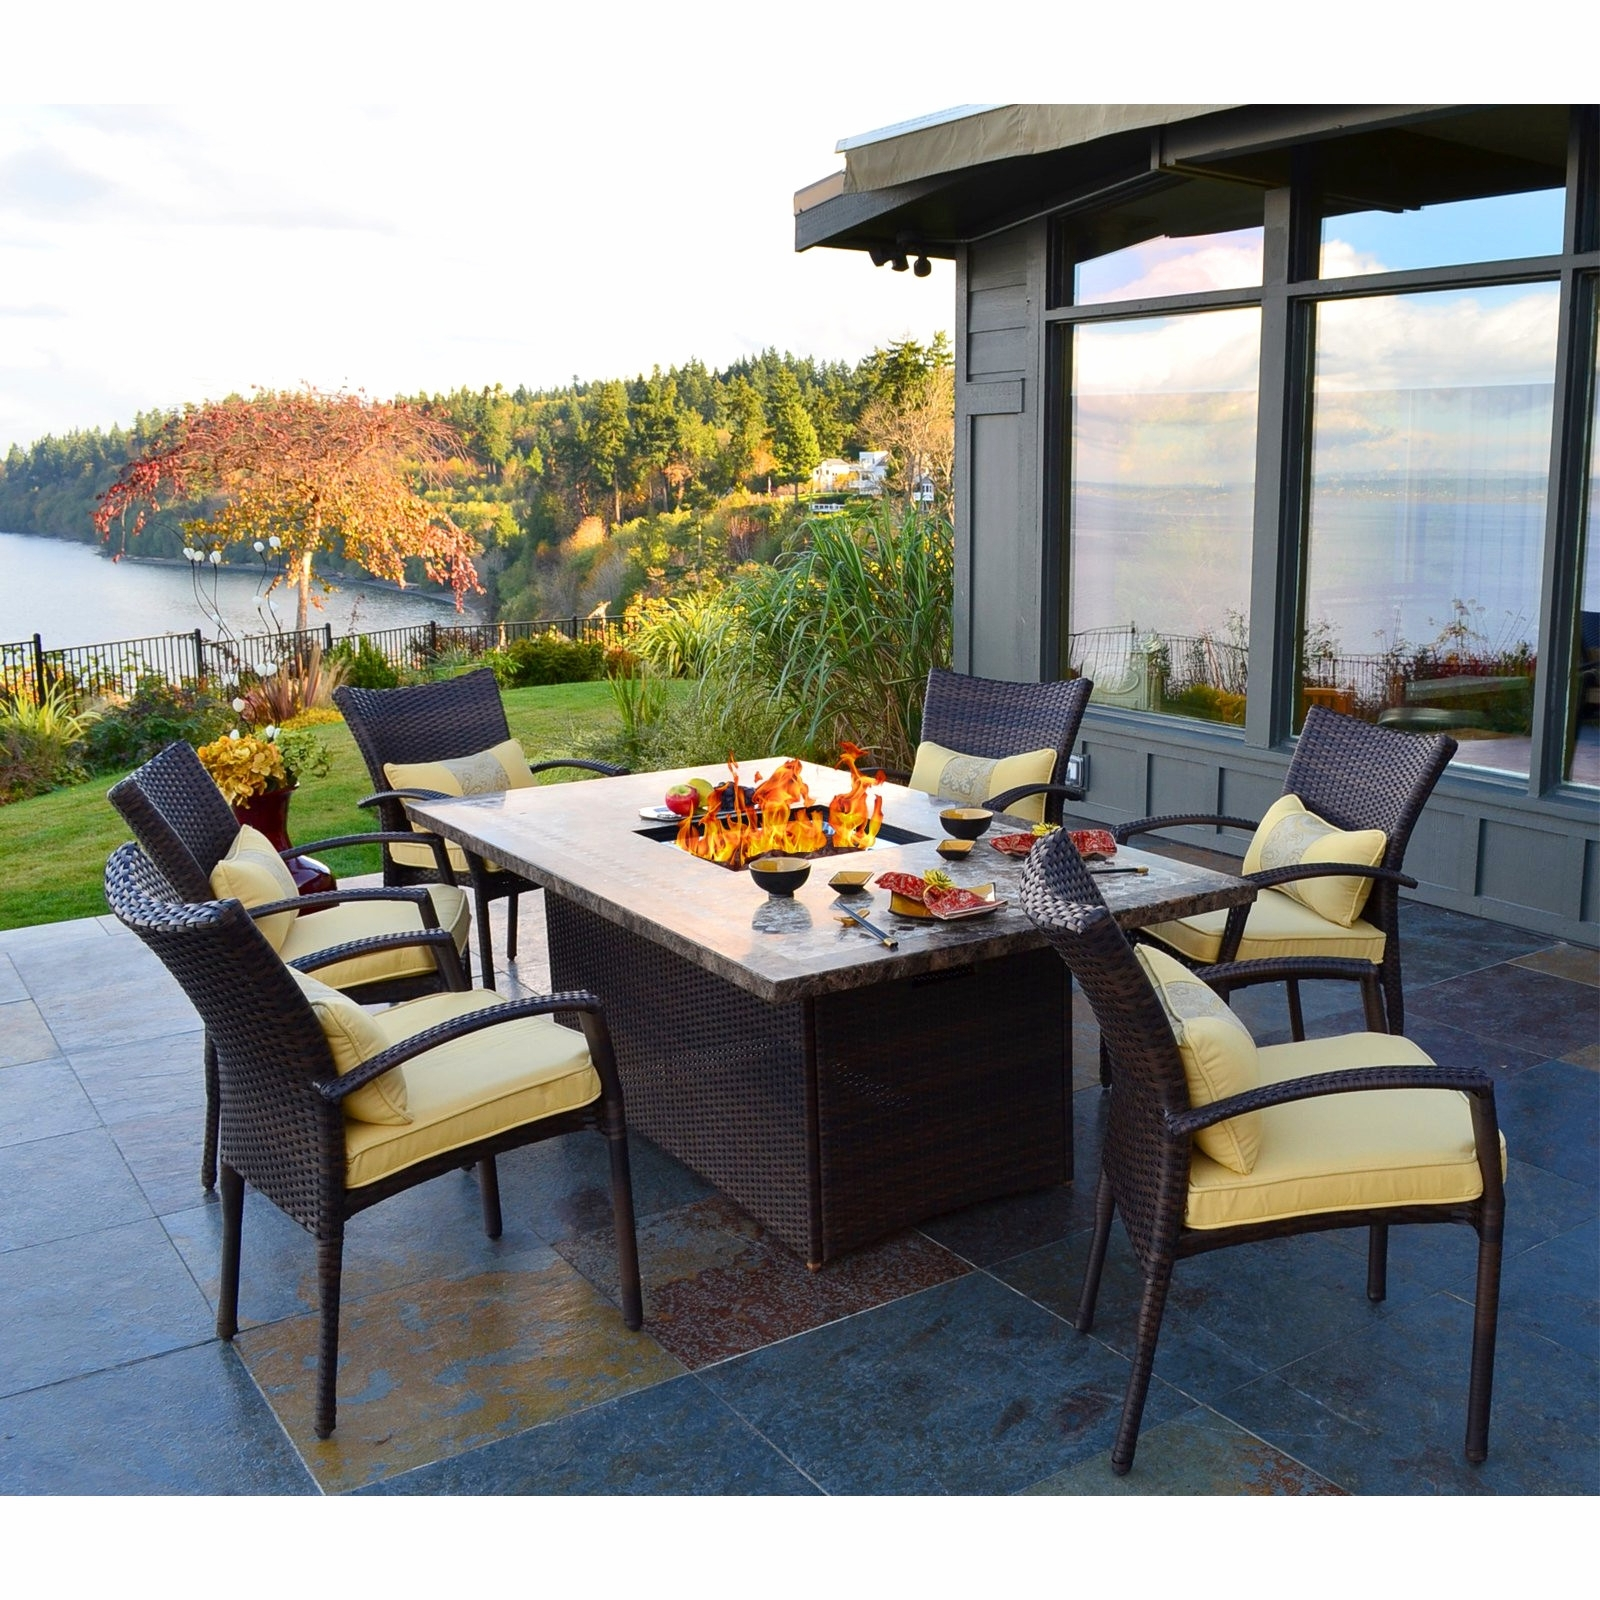 Well Known Patio Conversation Sets With Fire Table For Patio Dining Table With Fire Pit Lovely Conversation Sets Fire Pit (View 15 of 15)